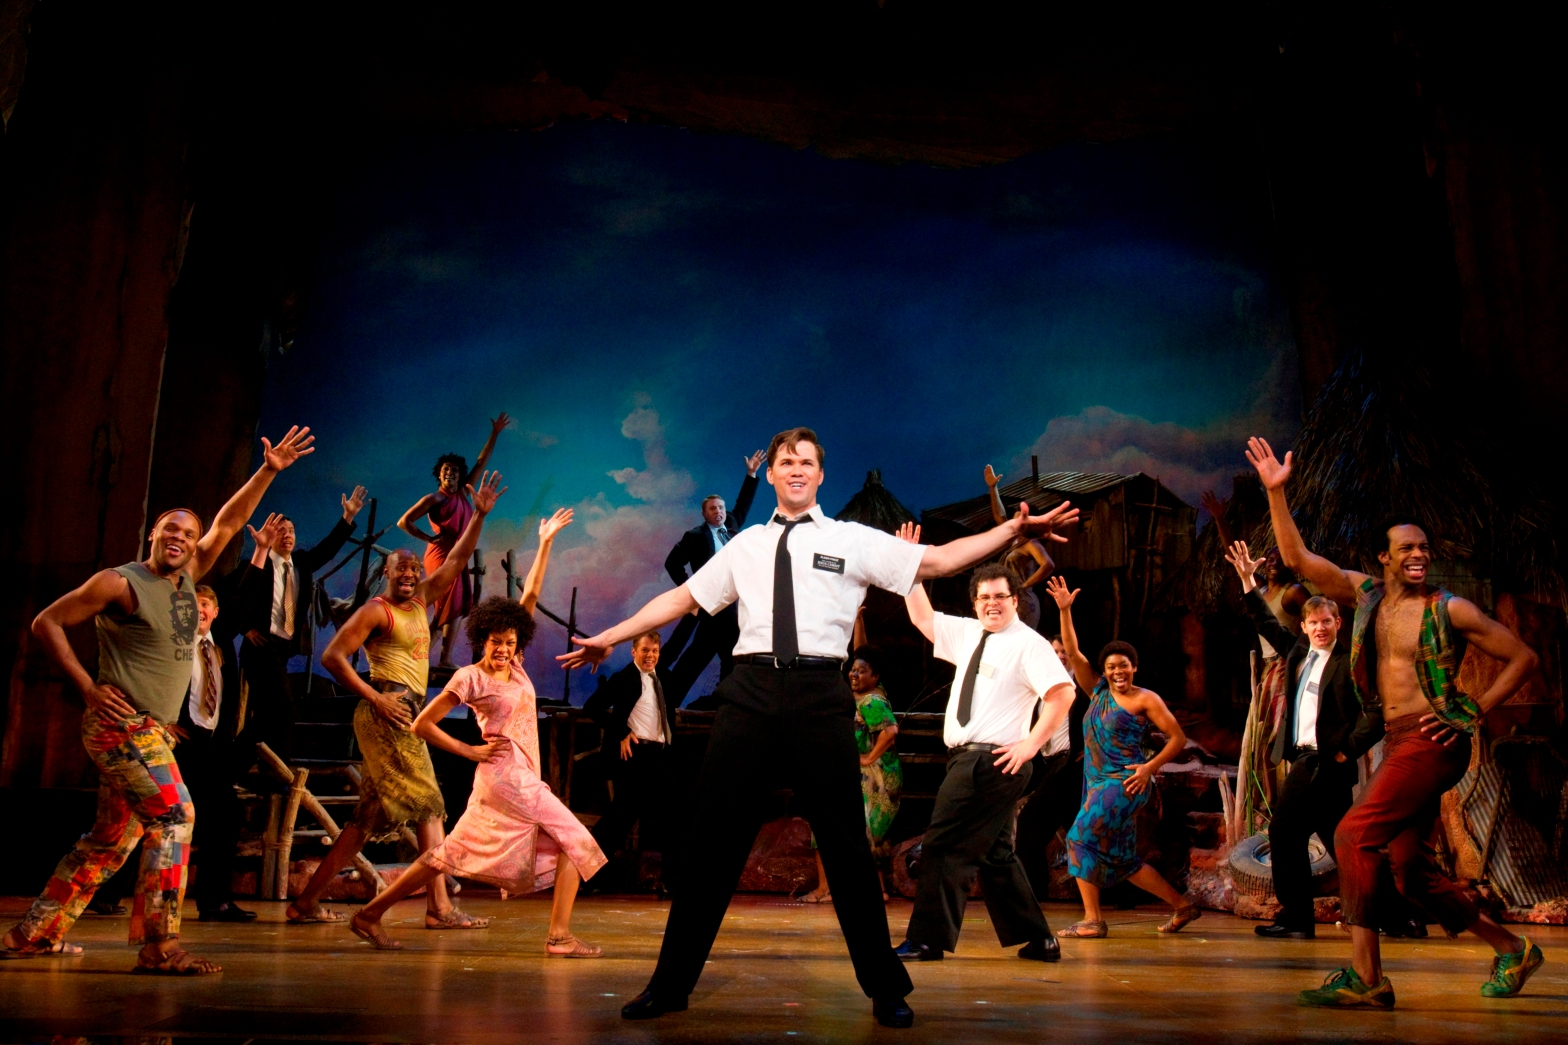 The Book of Mormon made me cry. Why?